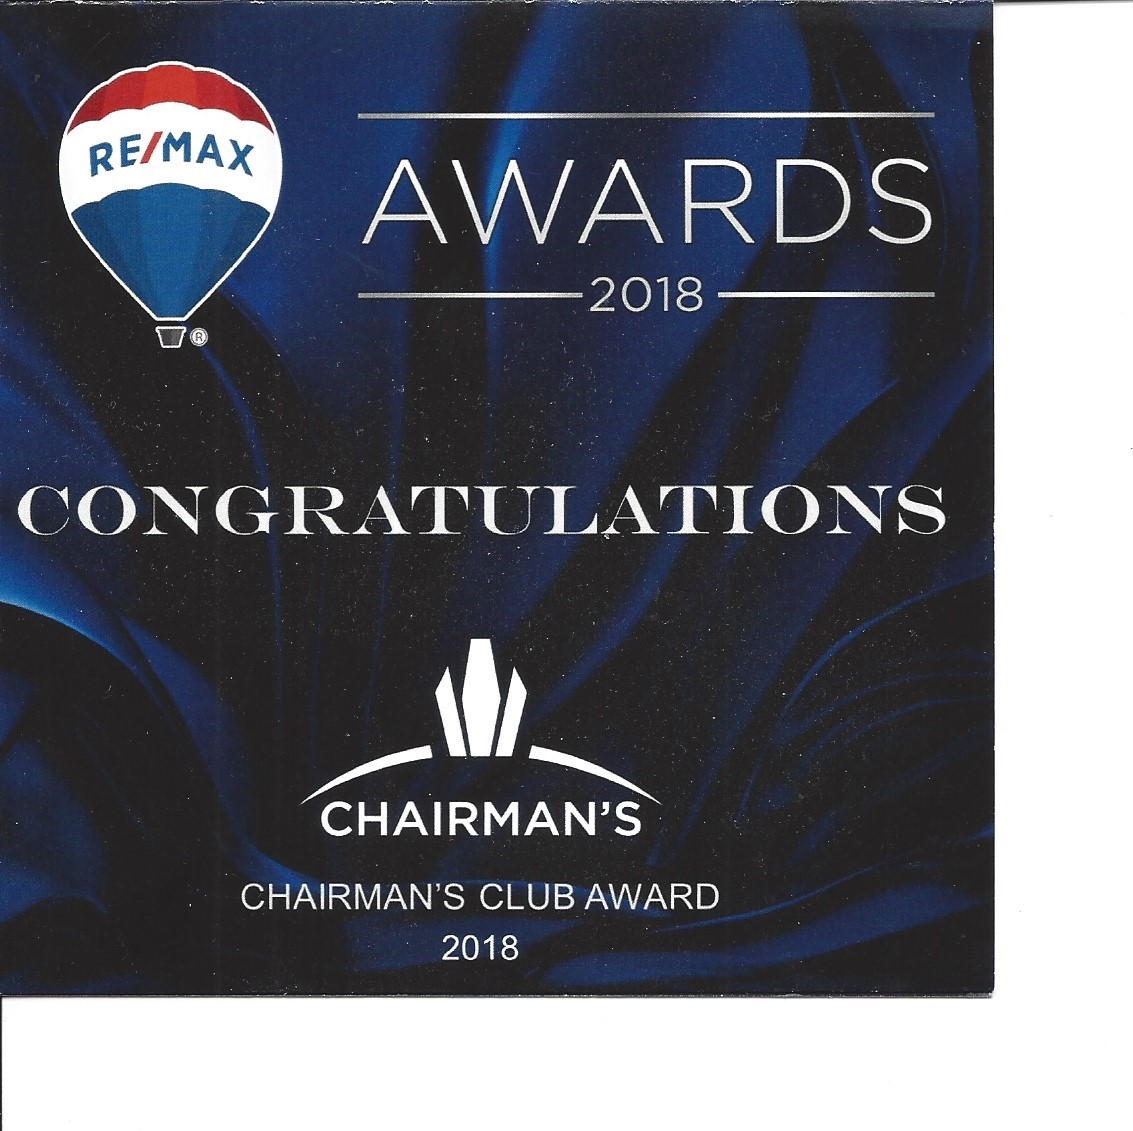 Chairmans Award reaches a sales goal which I have achieved for the last two years image